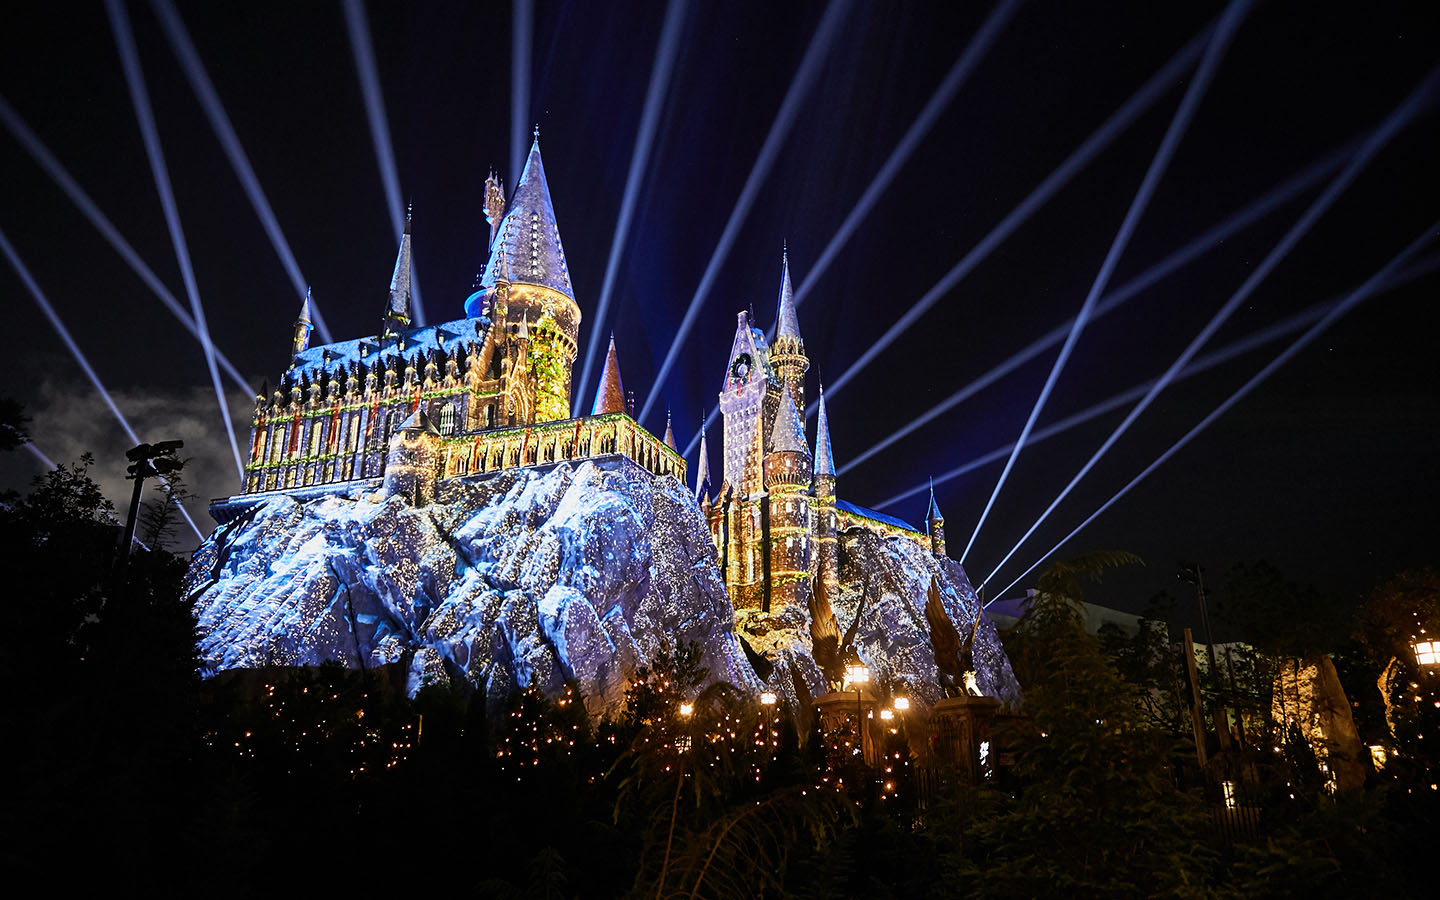 The-Magic-of-Christmas-at-Hogwarts-Castle-Holidays-at-Universal-Orlando-Resort.jpg